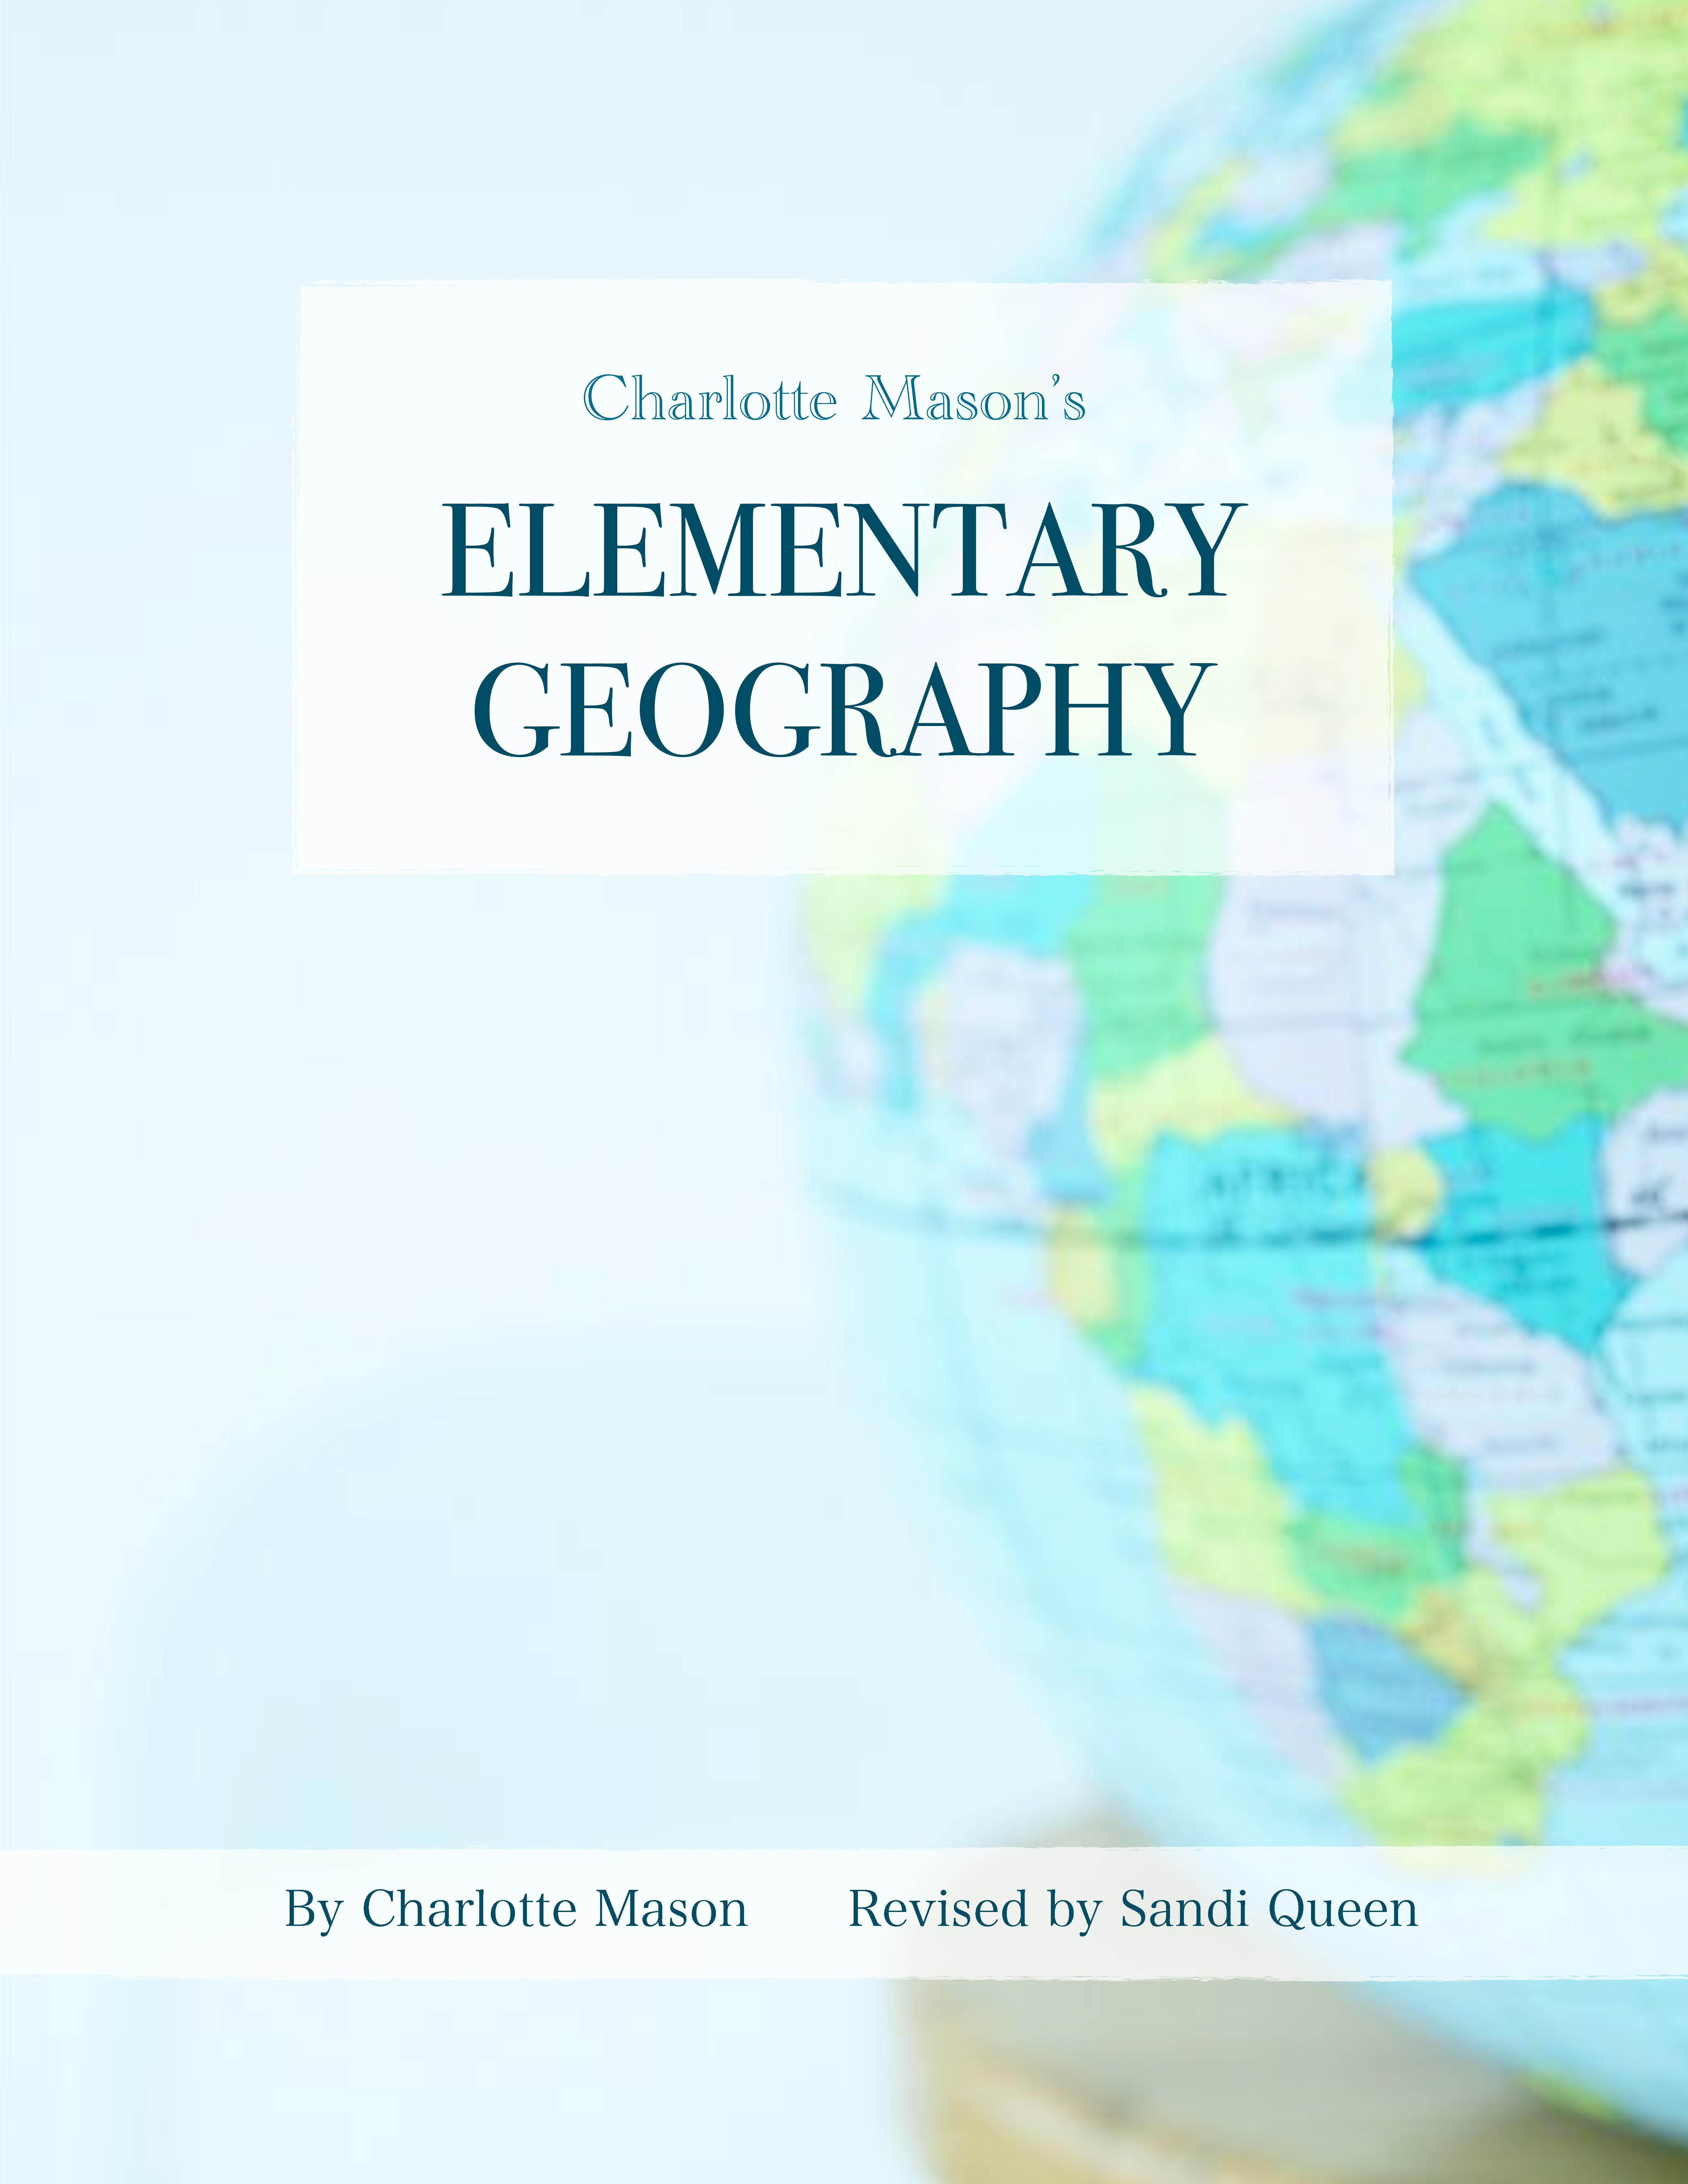 Charlotte Mason's Elementary Geography - eBook - Click Image to Close